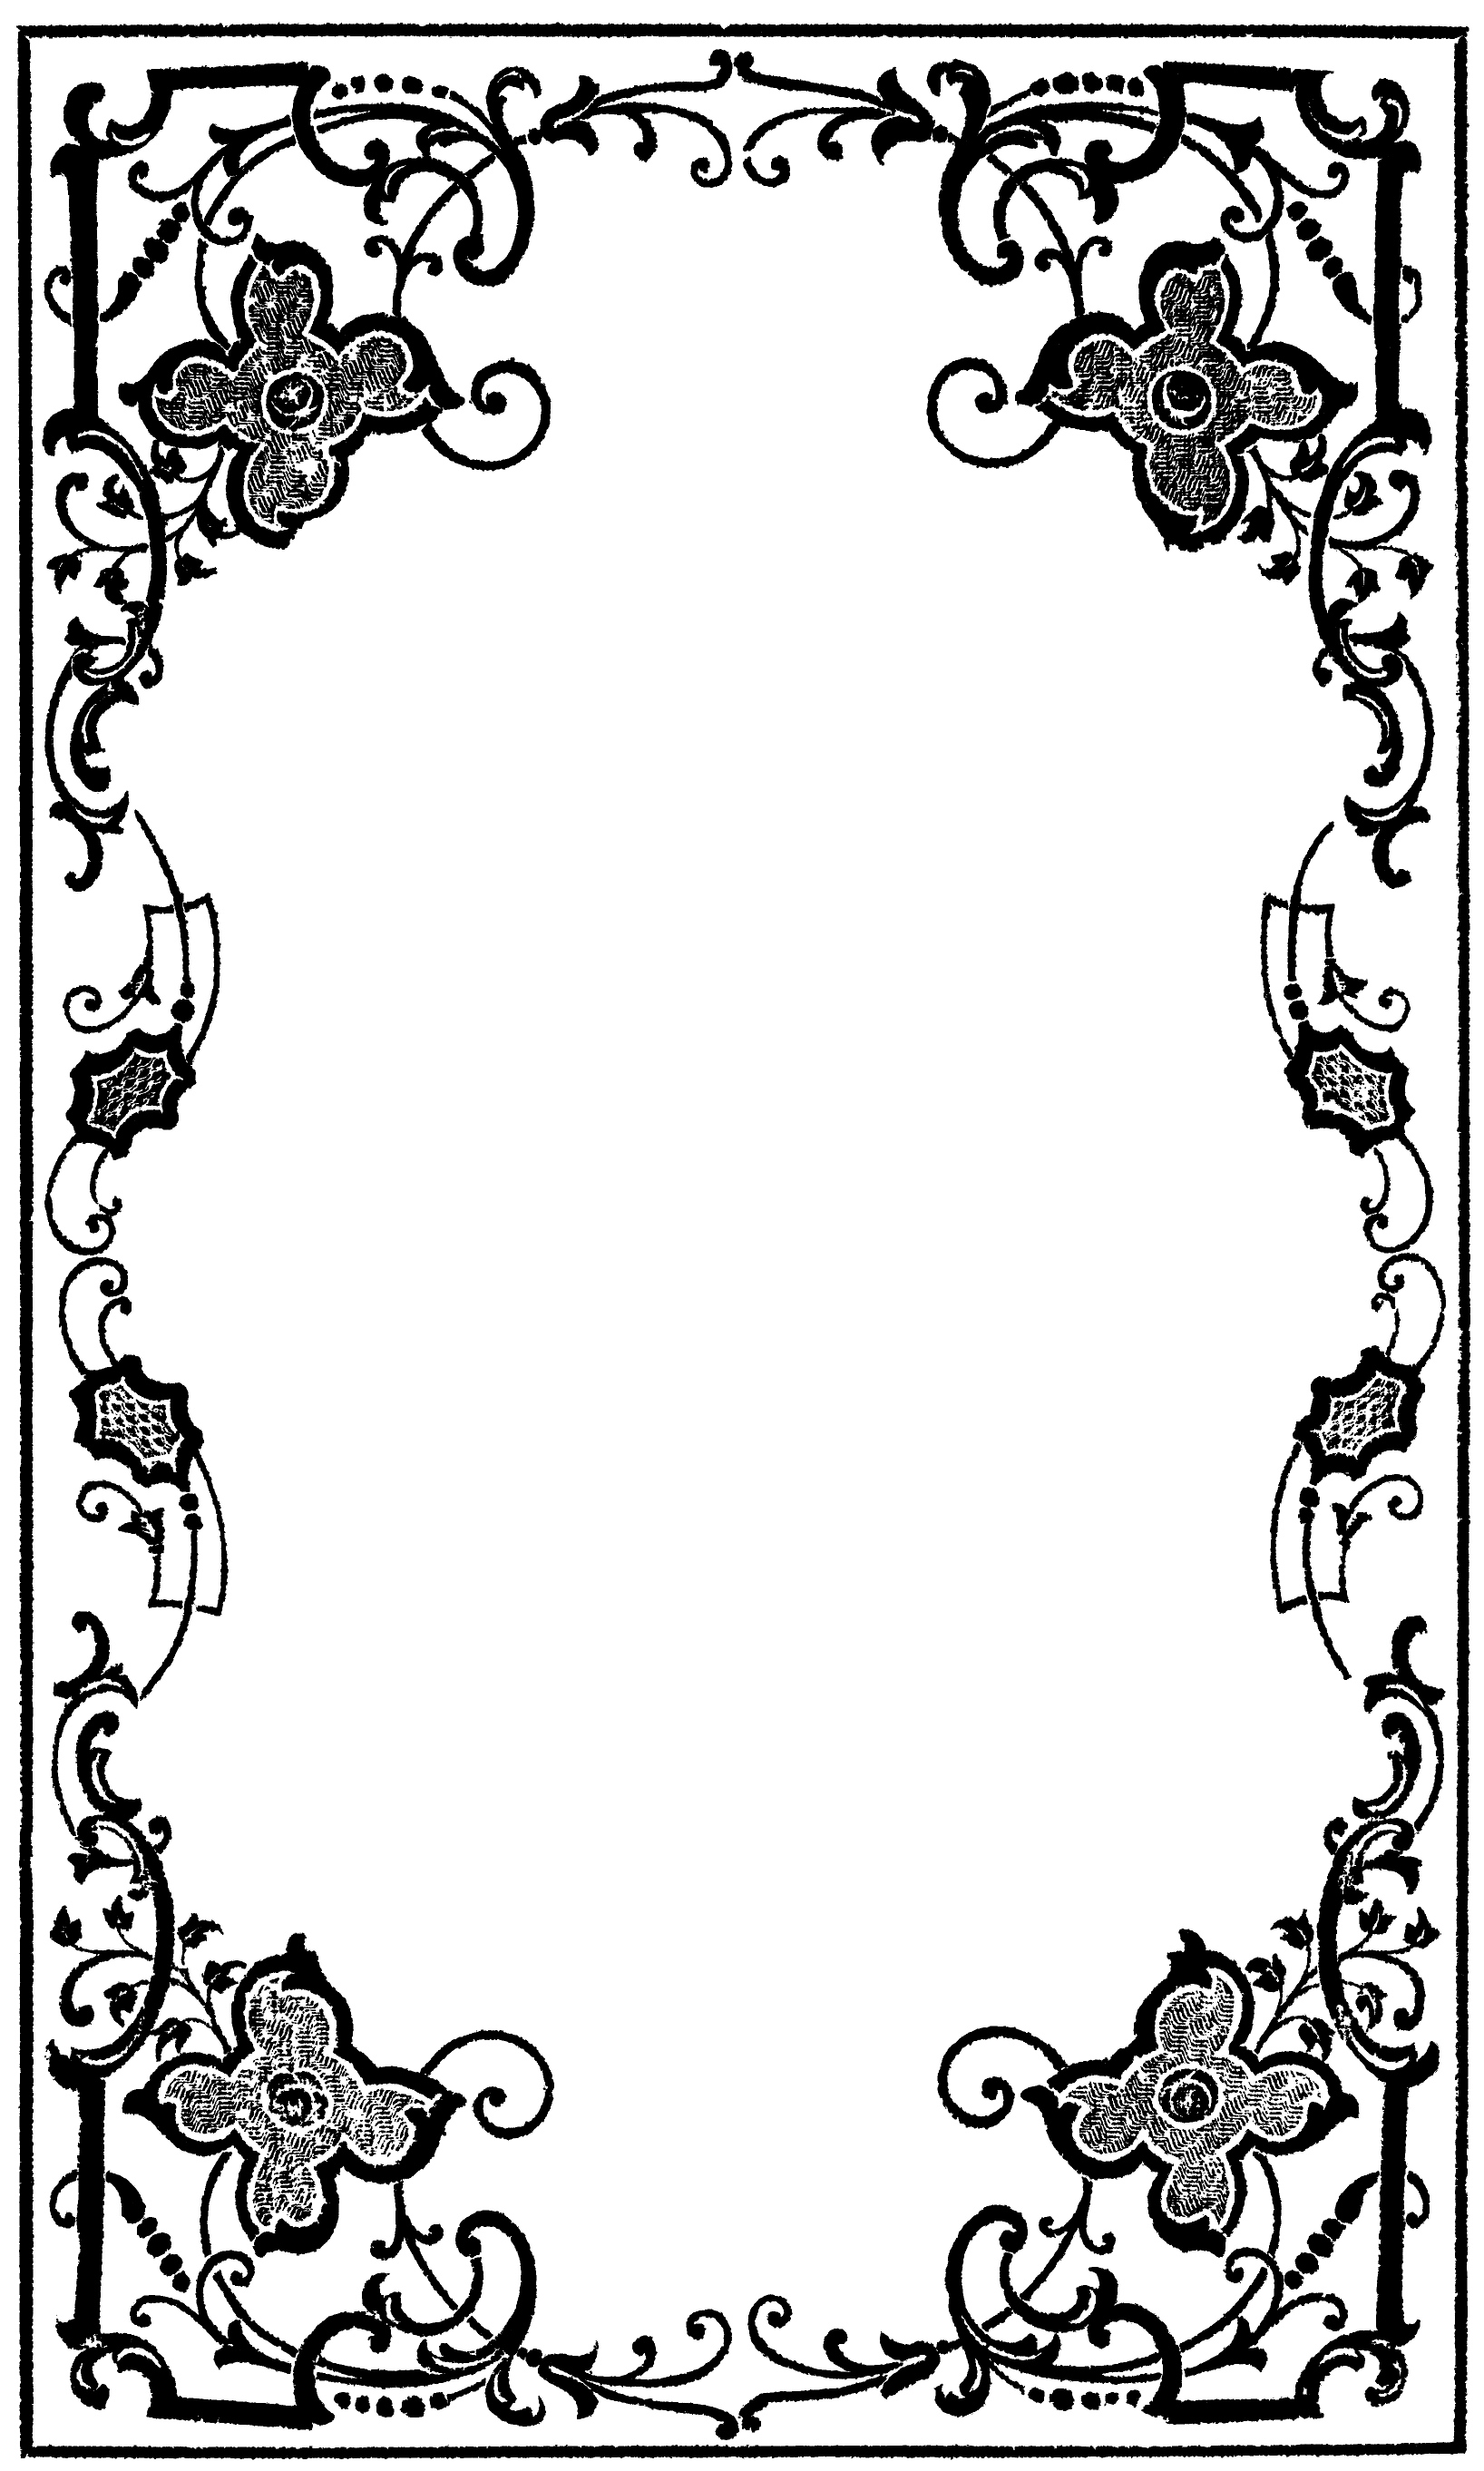 Drawing Book Cover Page Decoration : Decorative page borders free clipart best